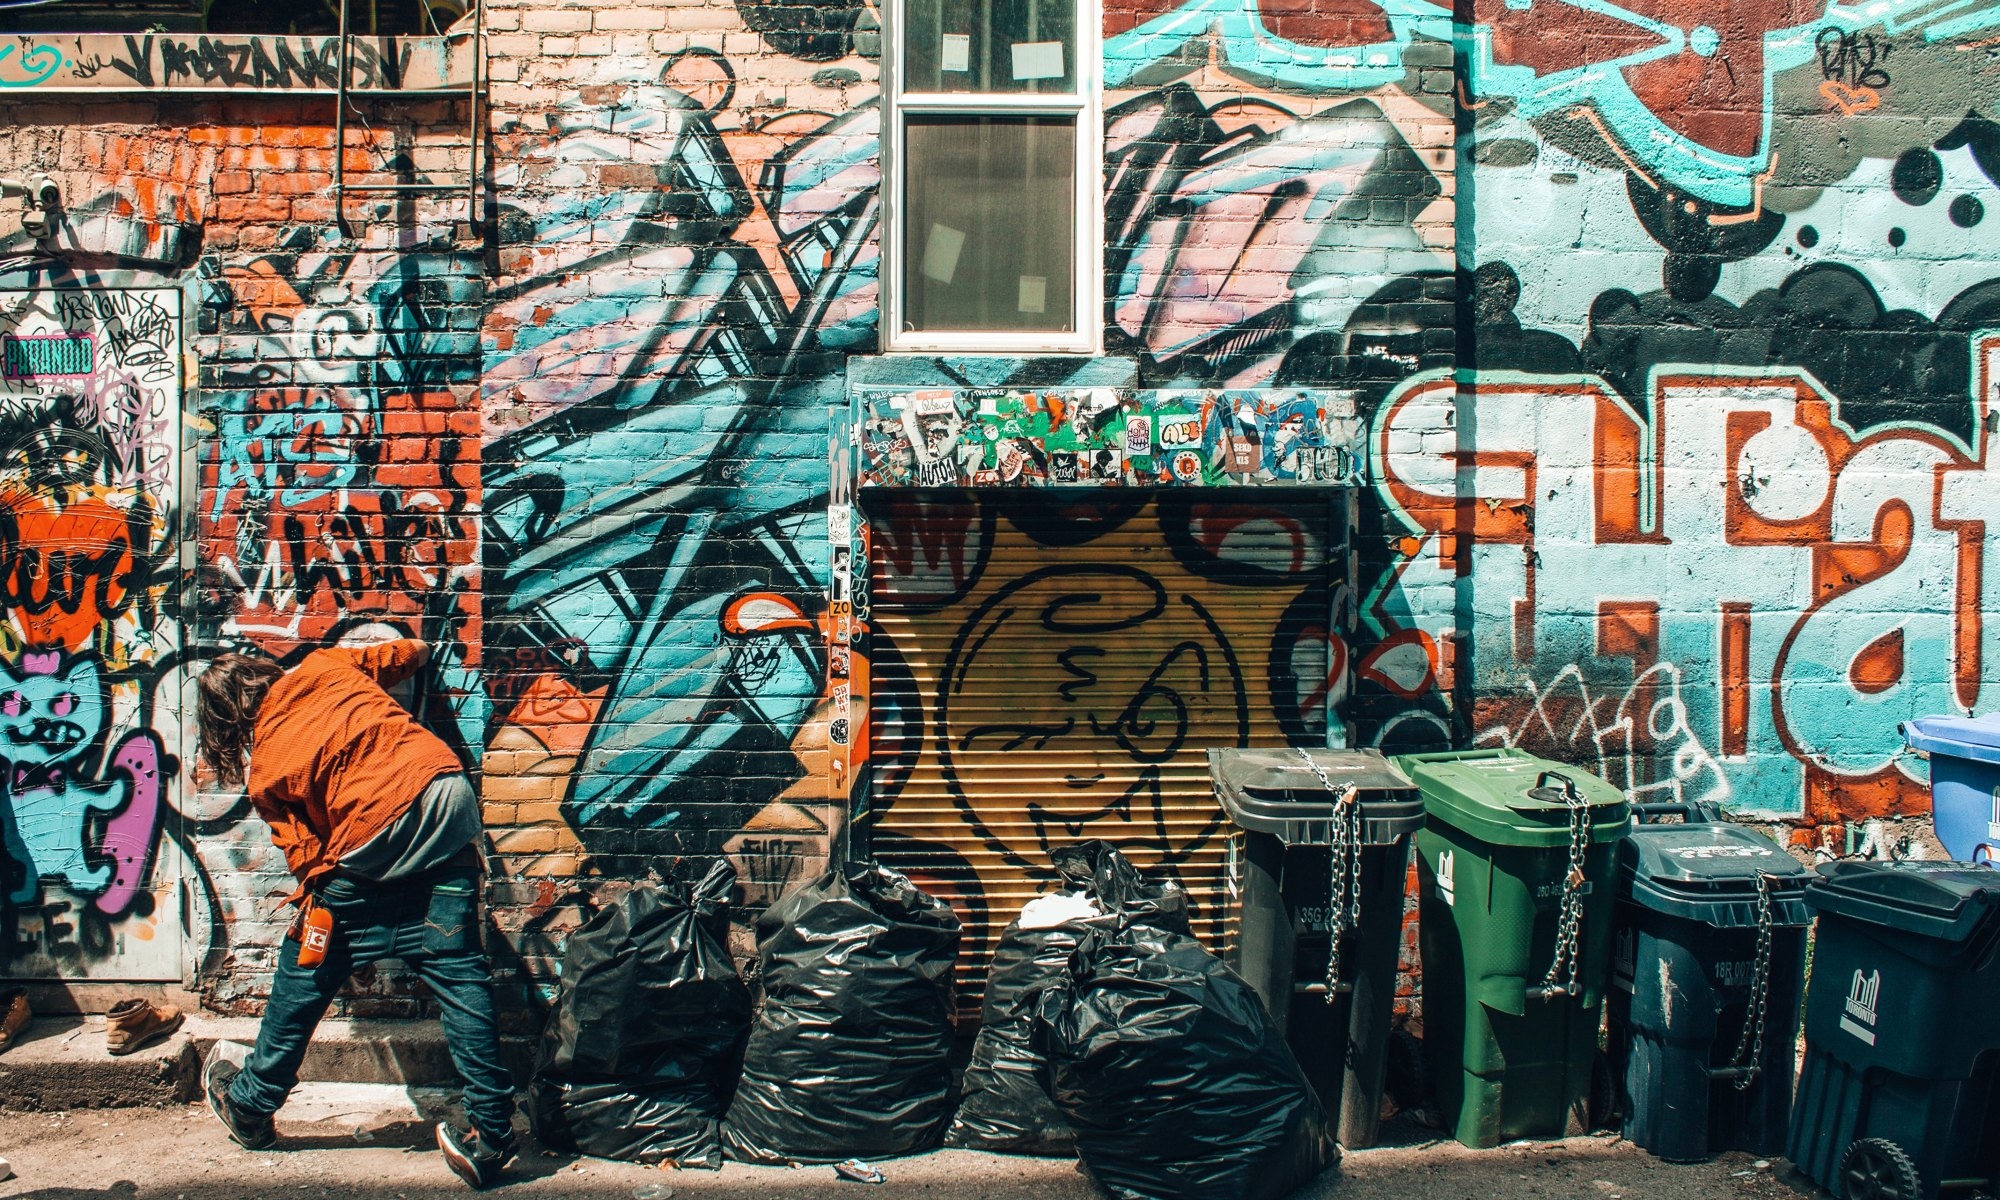 Crystal meth addict standing in front of graffiti wall besides trash bags